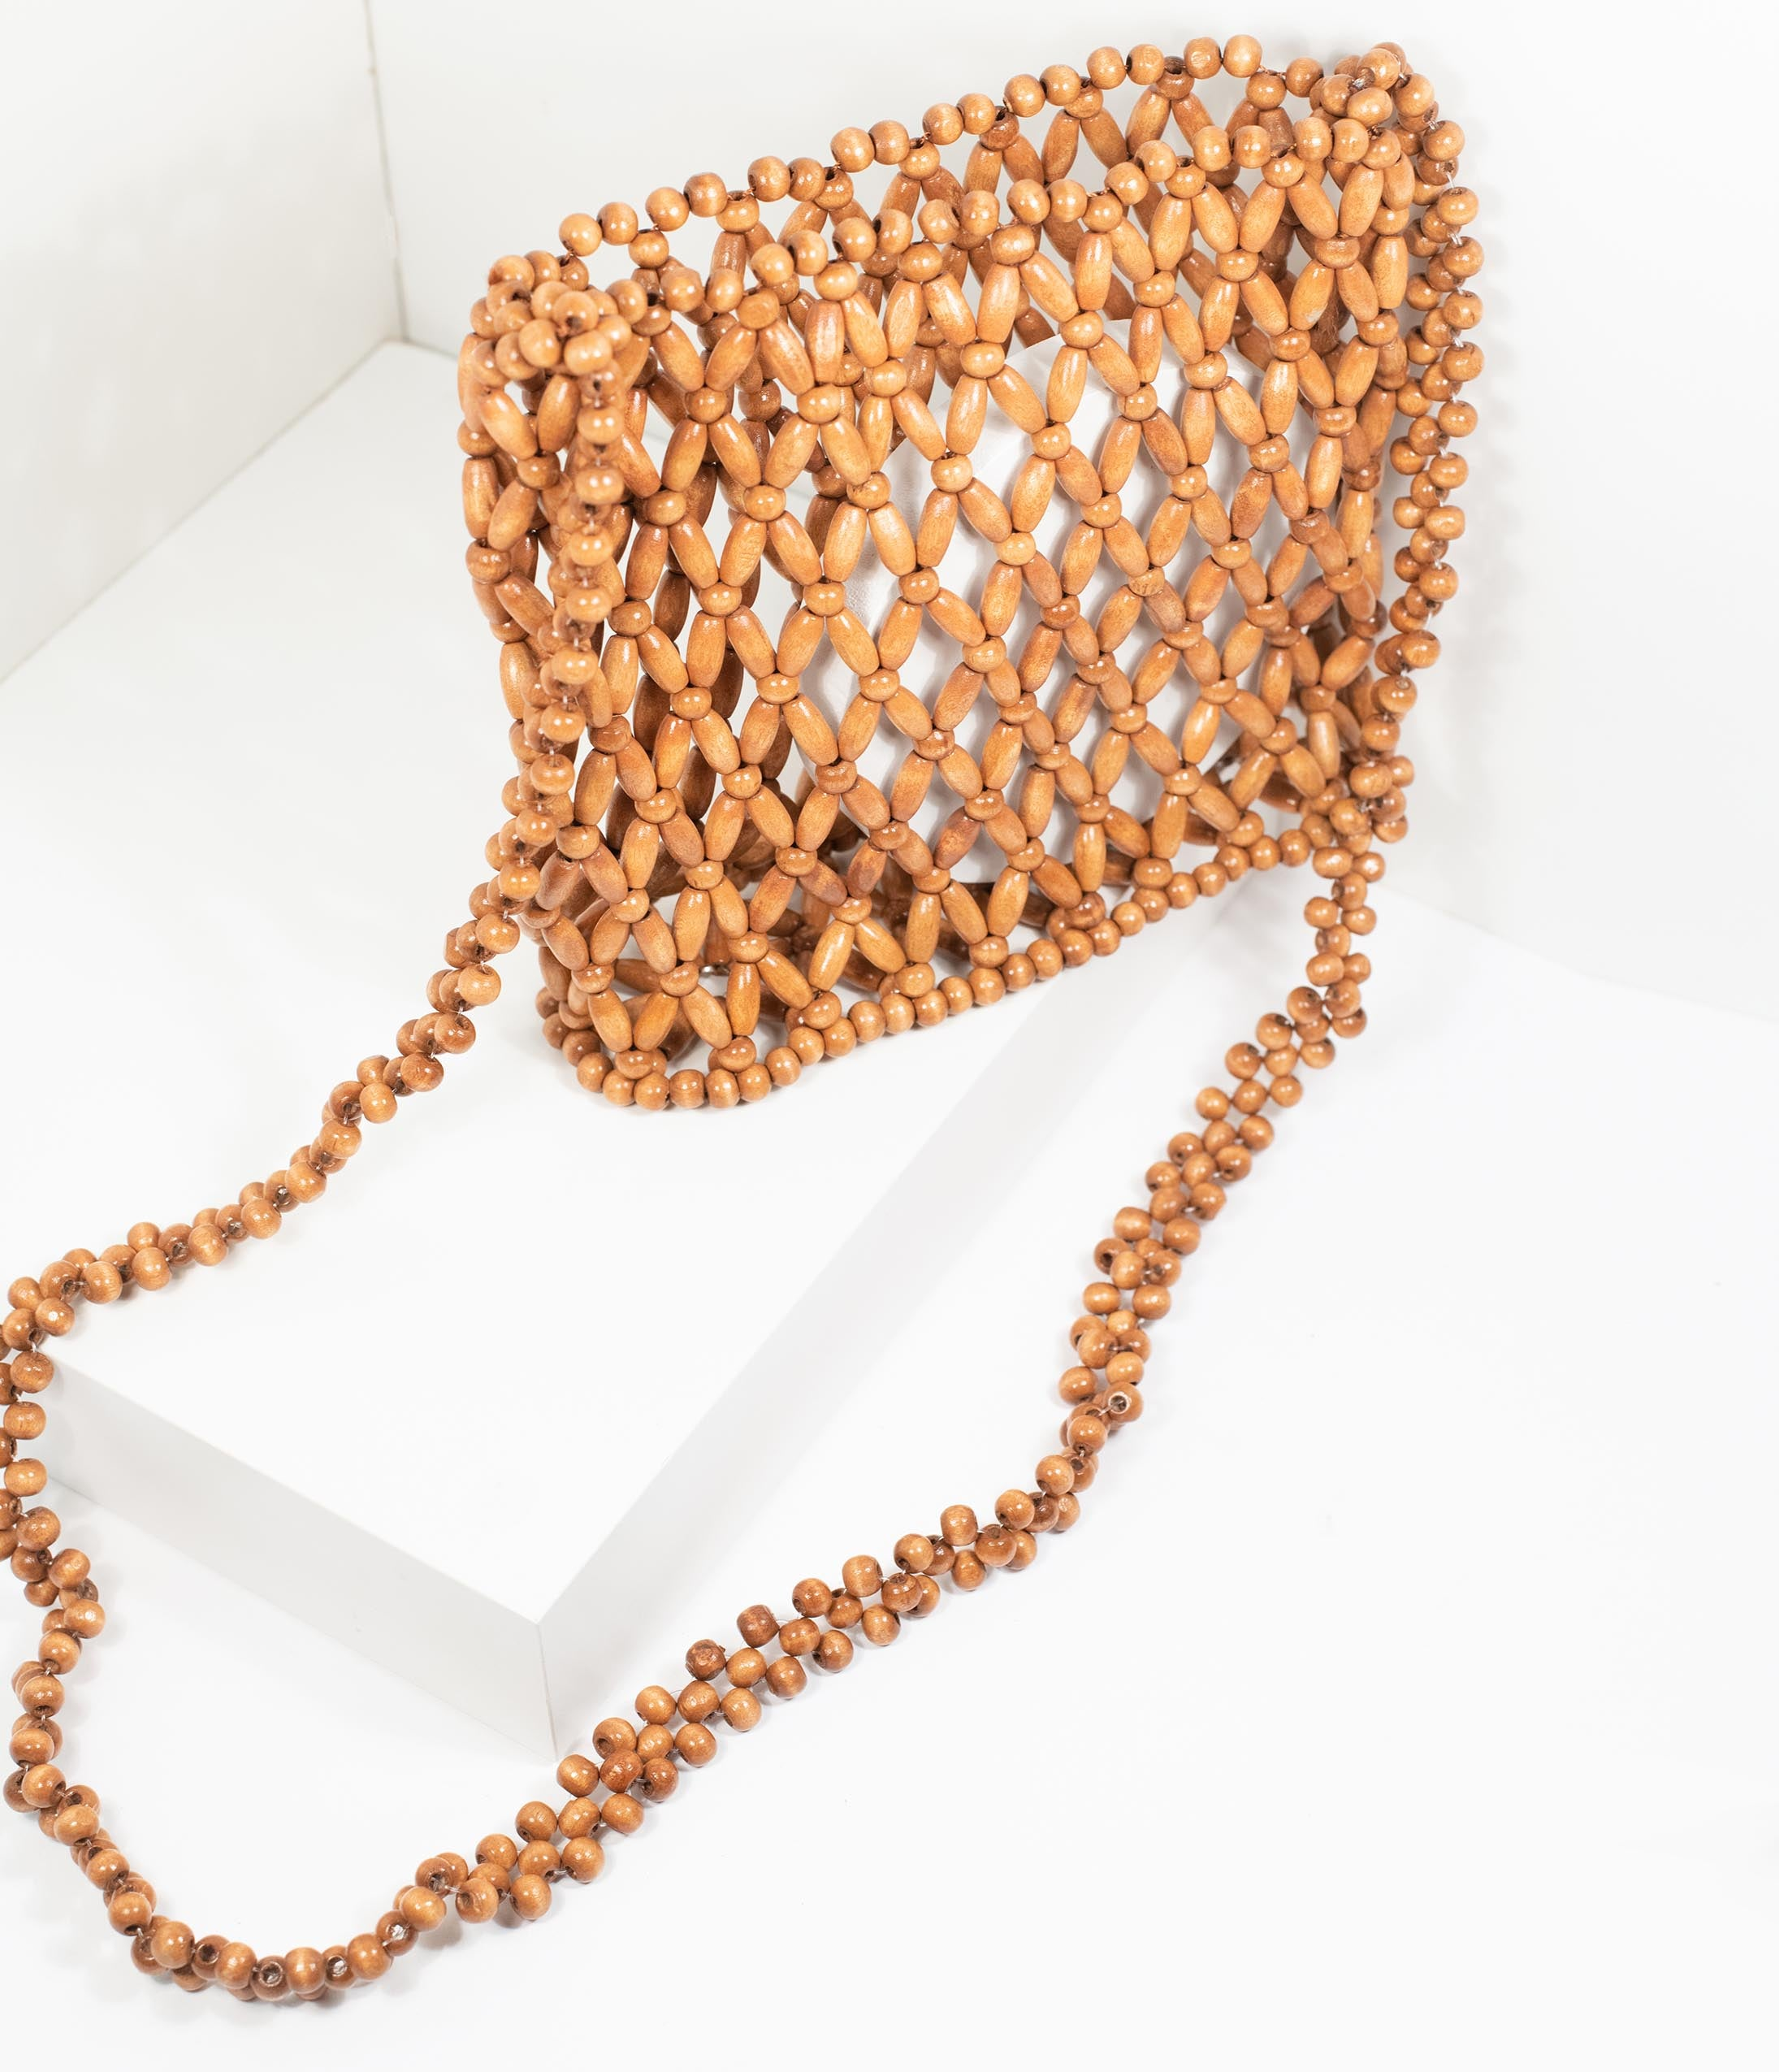 70s Fashion   What Did Women Wear in the 1970s? 1970S Style Brown Beaded Crossbody Purse $56.00 AT vintagedancer.com